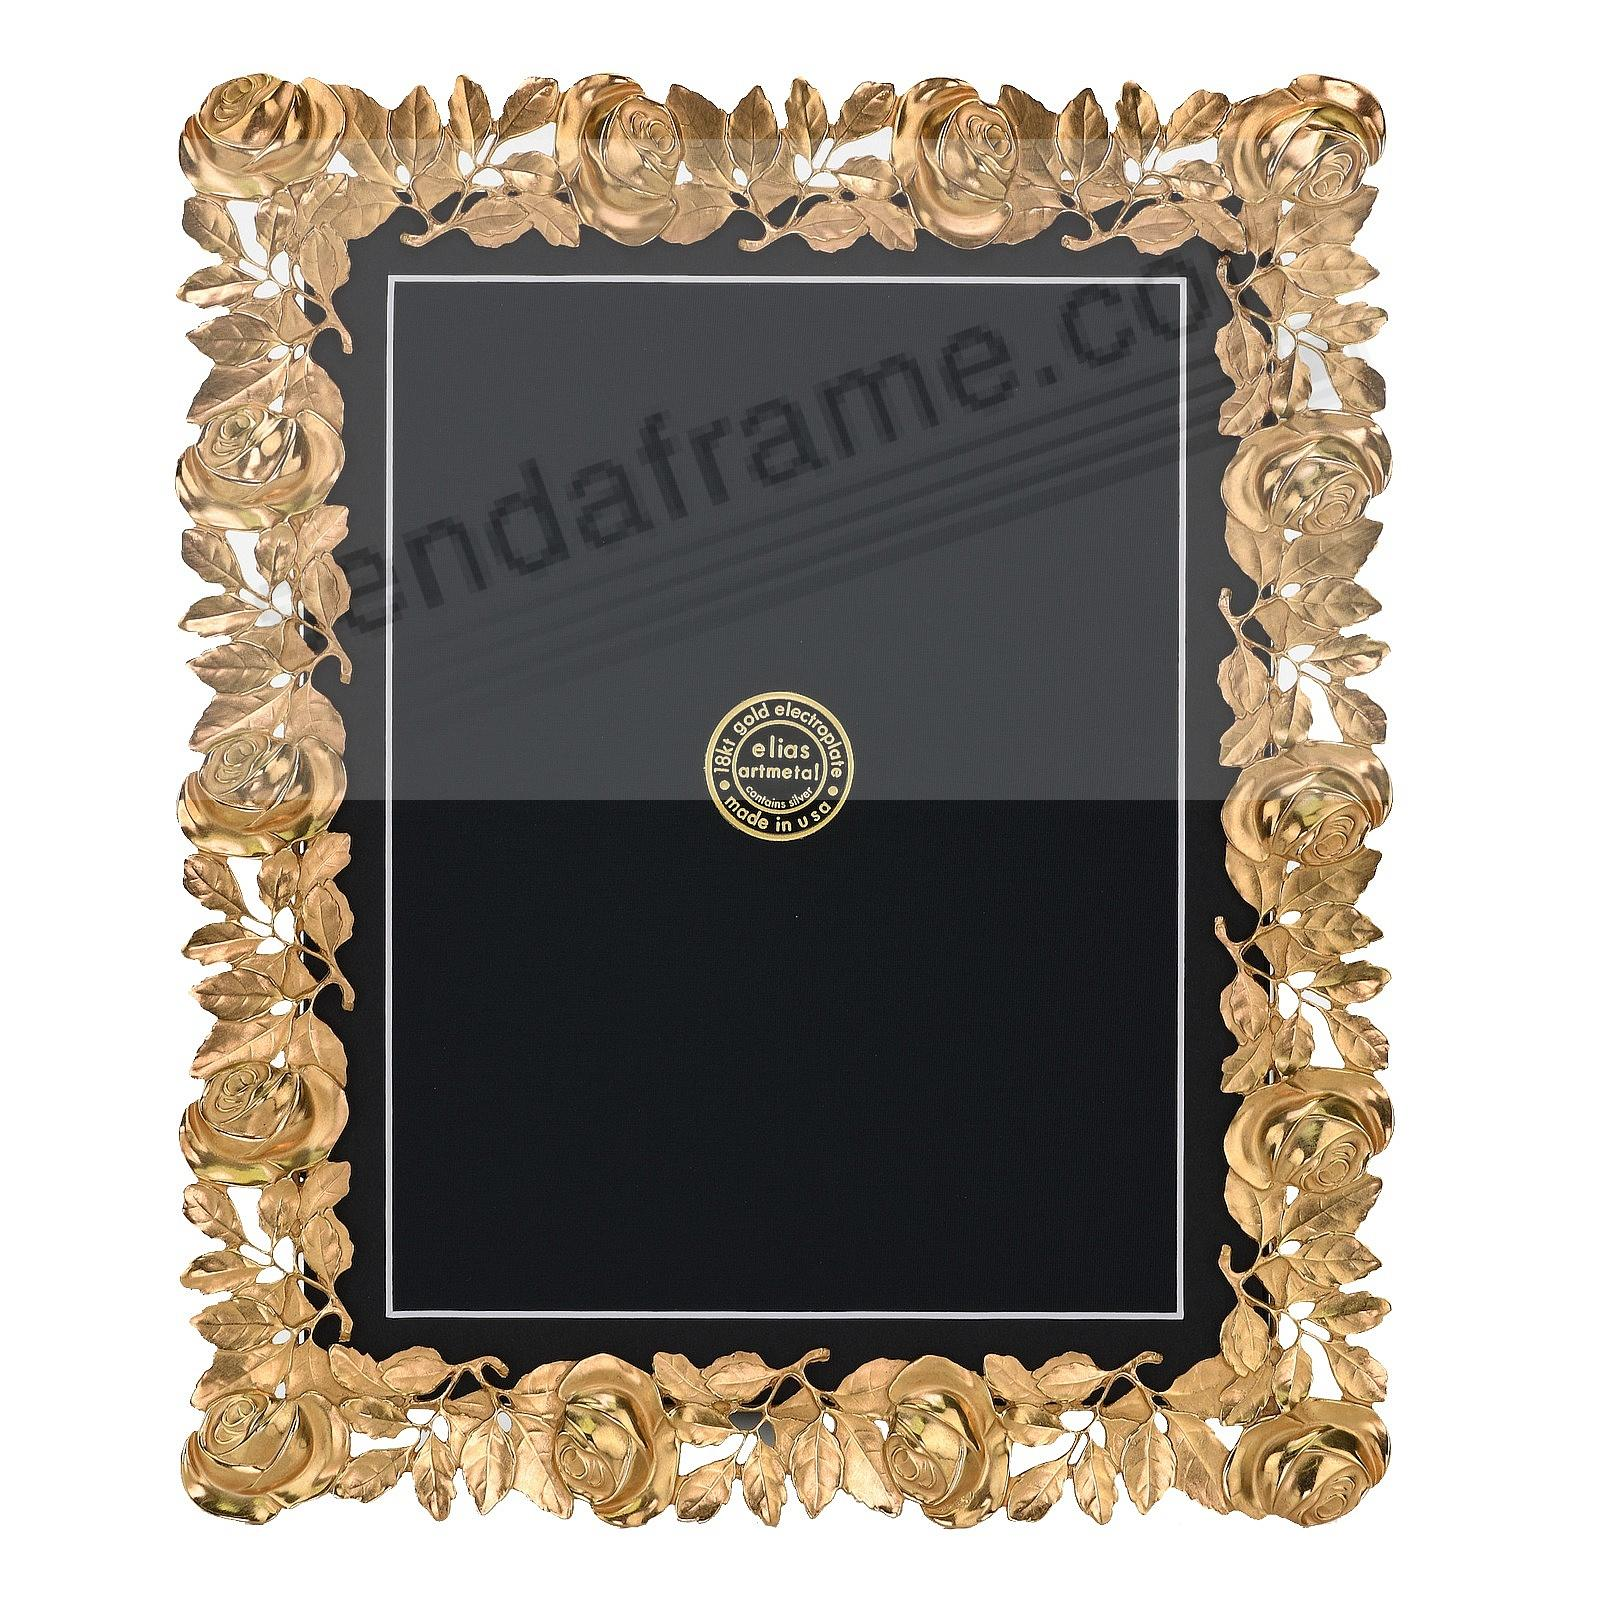 The ROSES FRAME 18kt Gold Vermeil over fine Pewter 8x10/7x9 by Elias Artmetal®